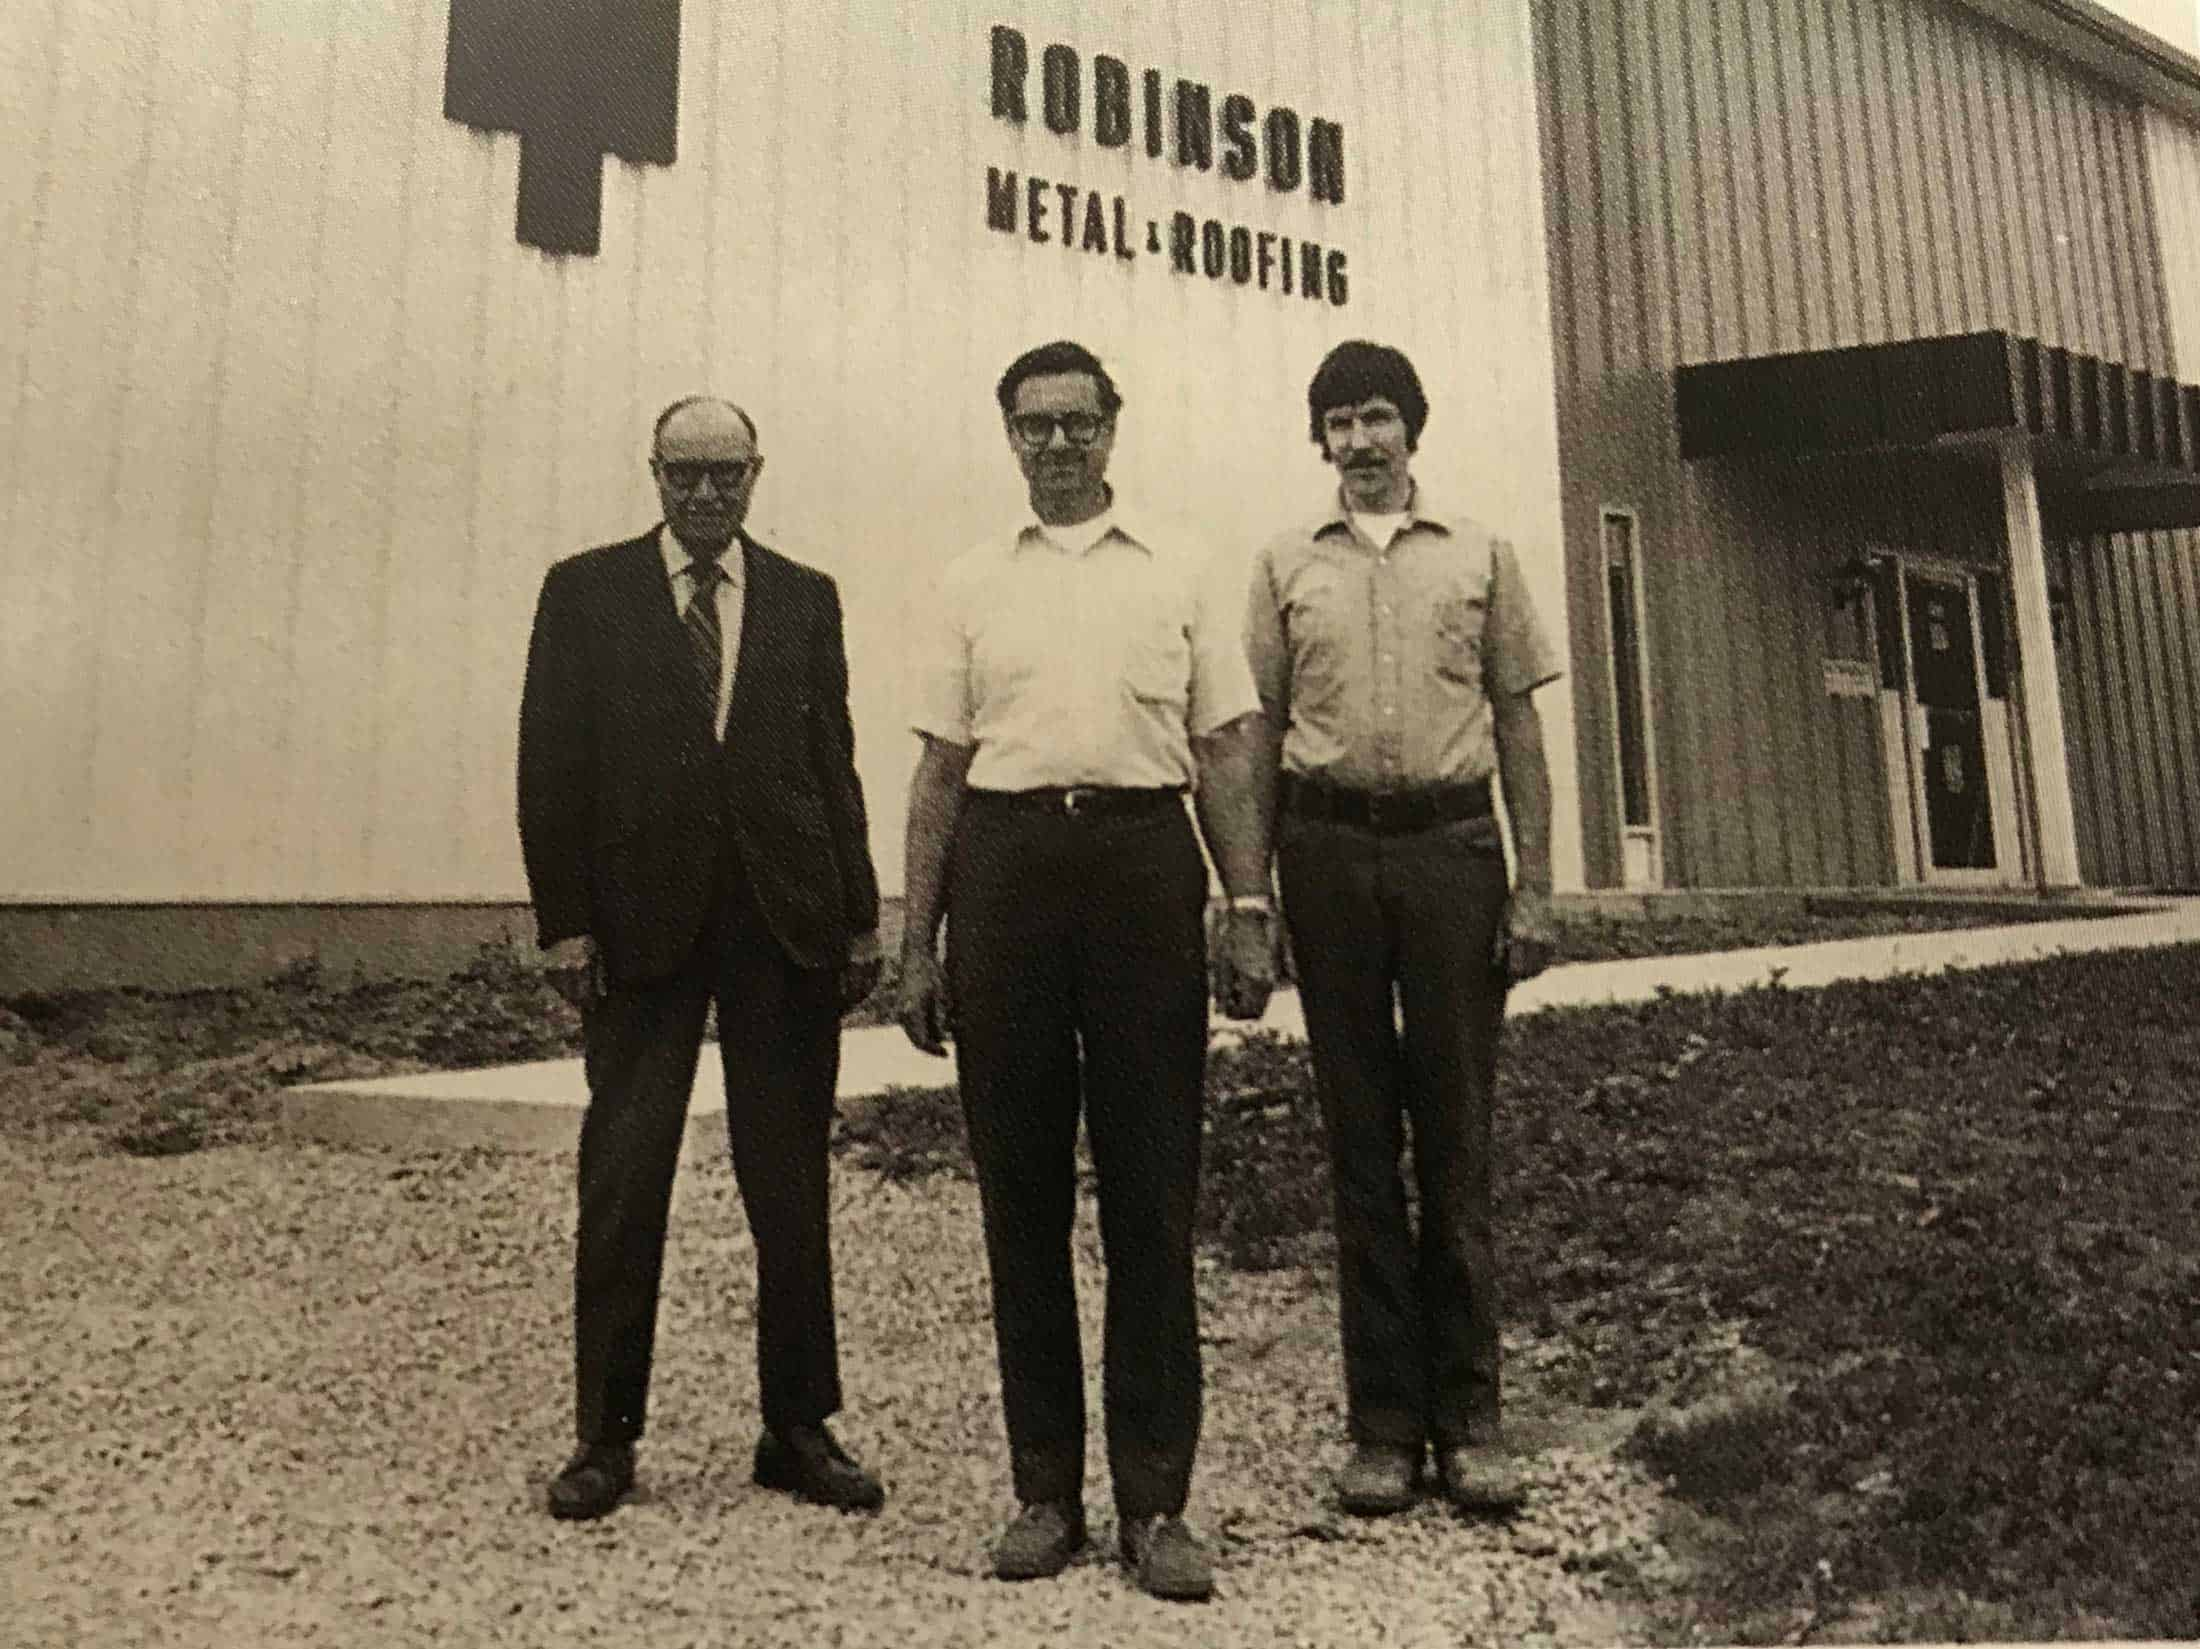 Robinson Metal and Roofing